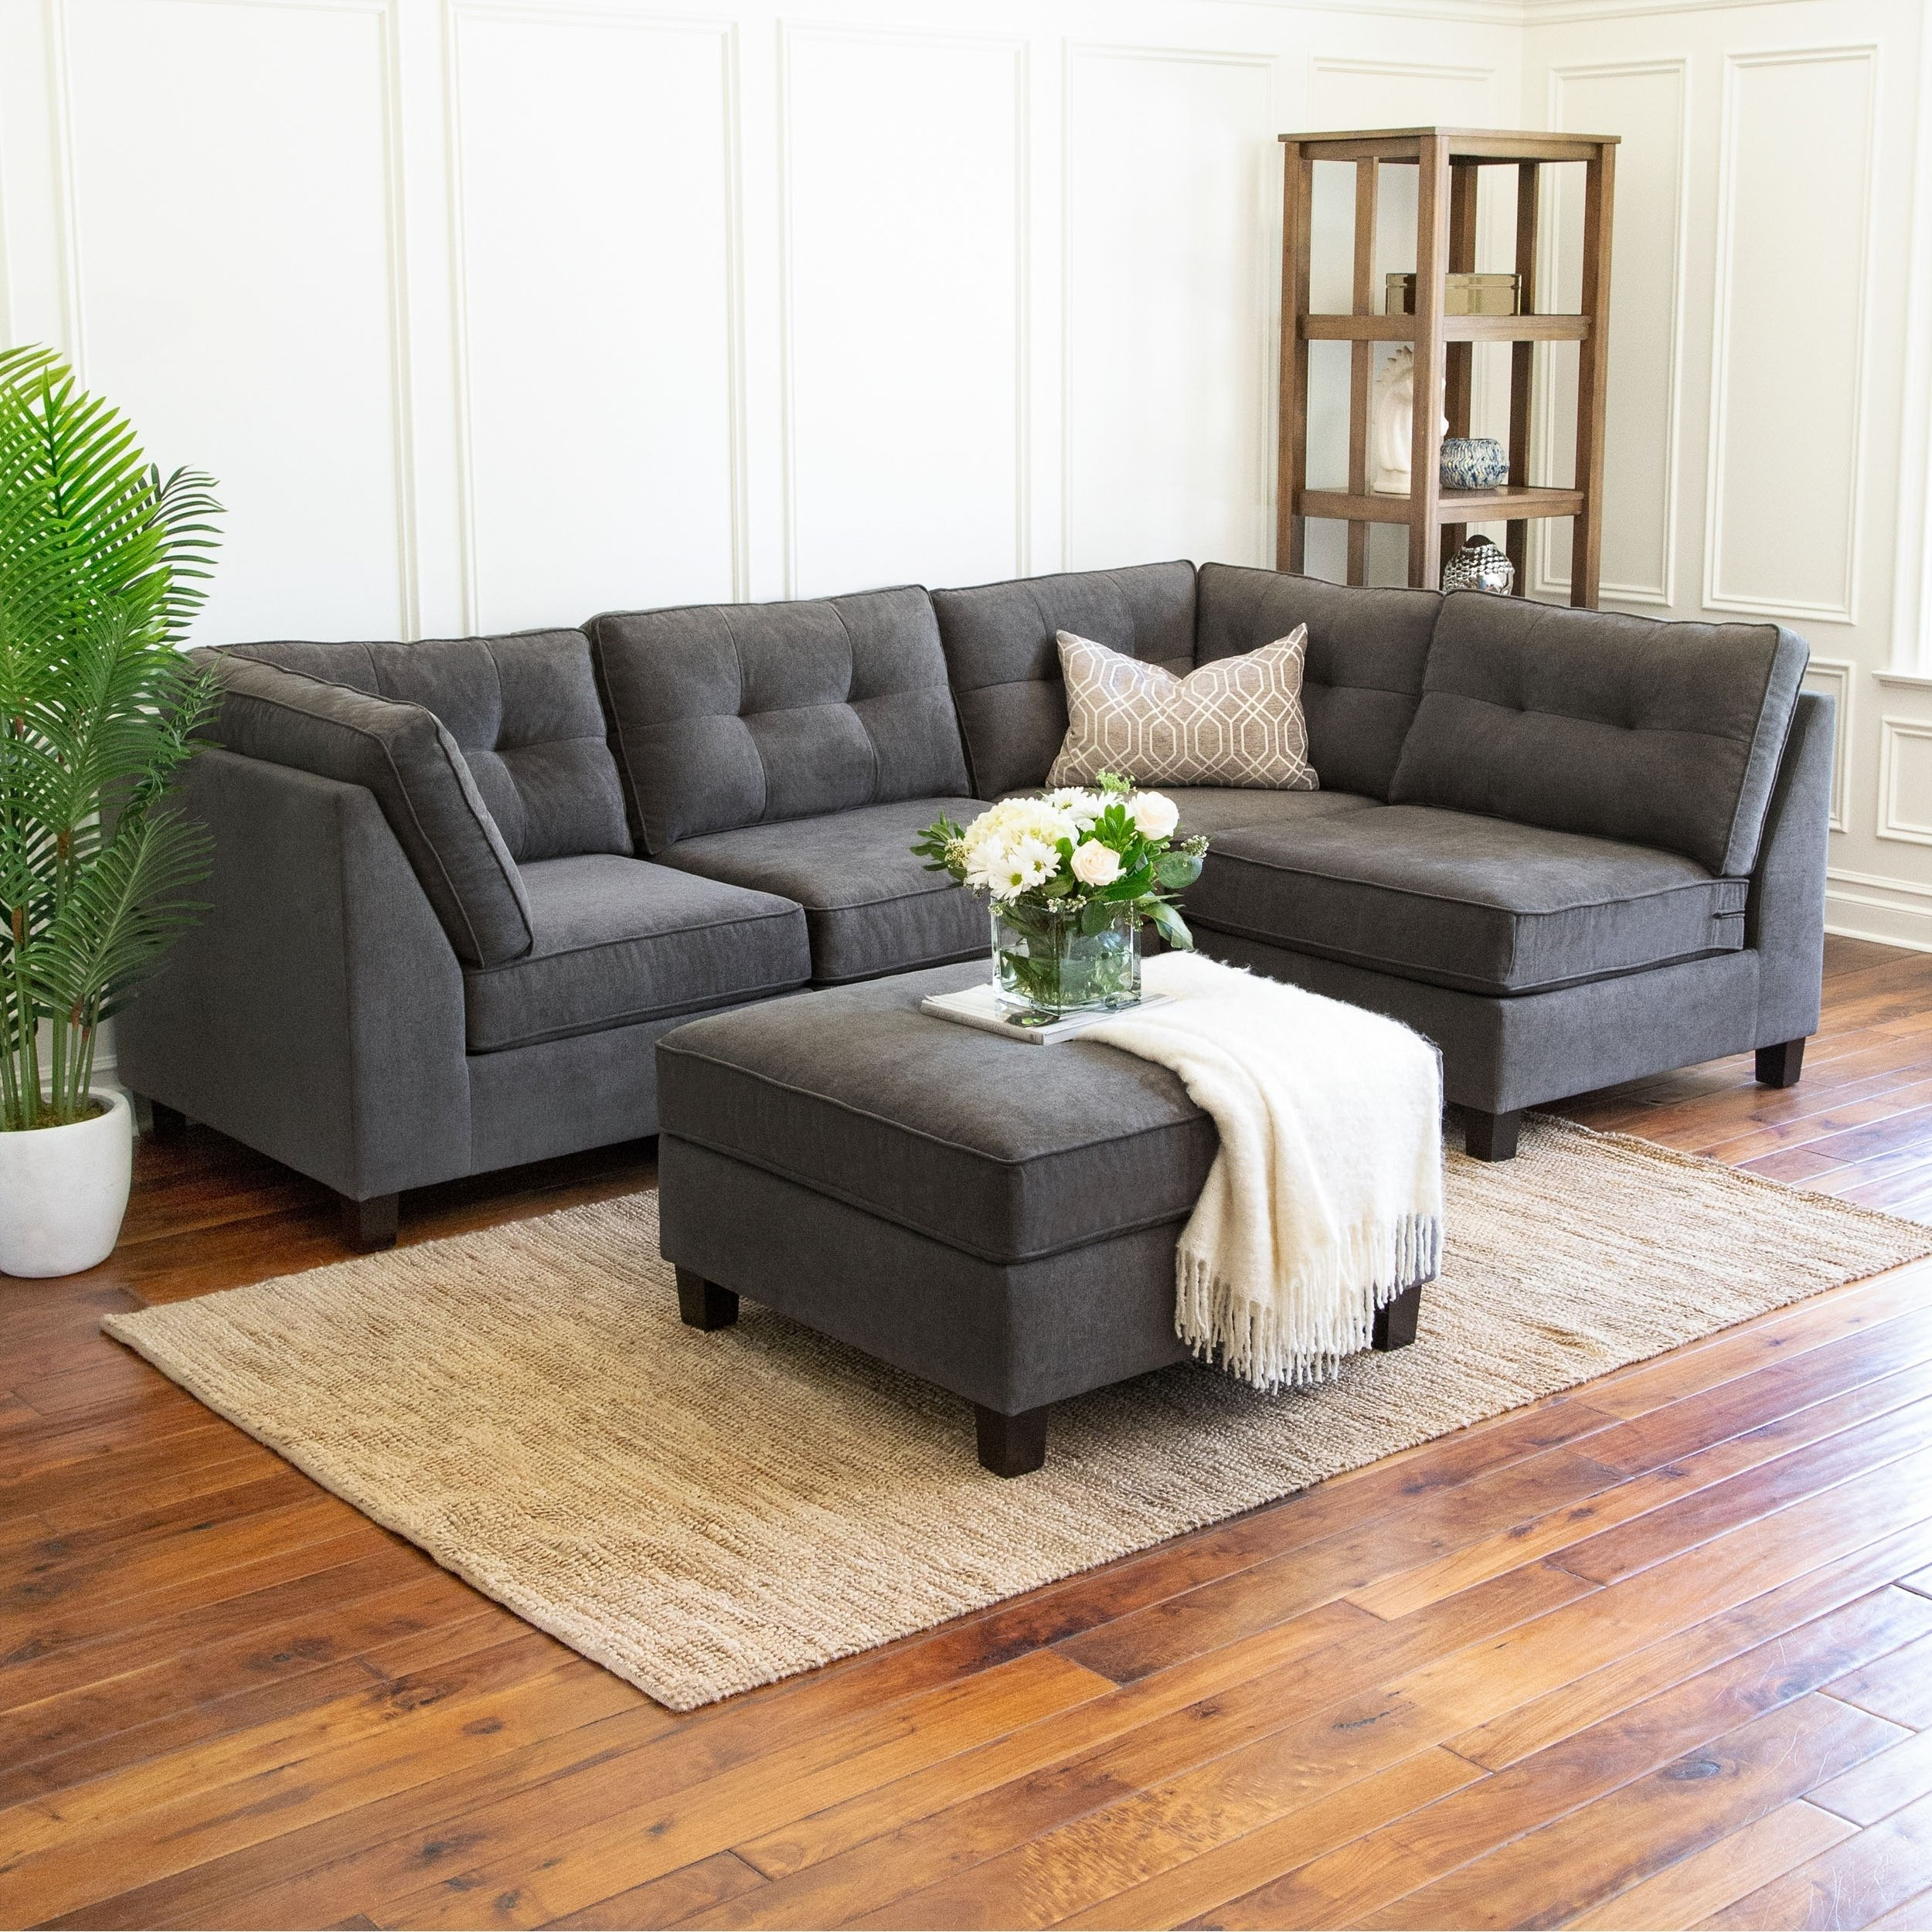 Shop Abbyson Maddox 5 Piece Modular Fabric Sectional – On Sale Throughout Maddox Oversized Sofa Chairs (Image 13 of 20)